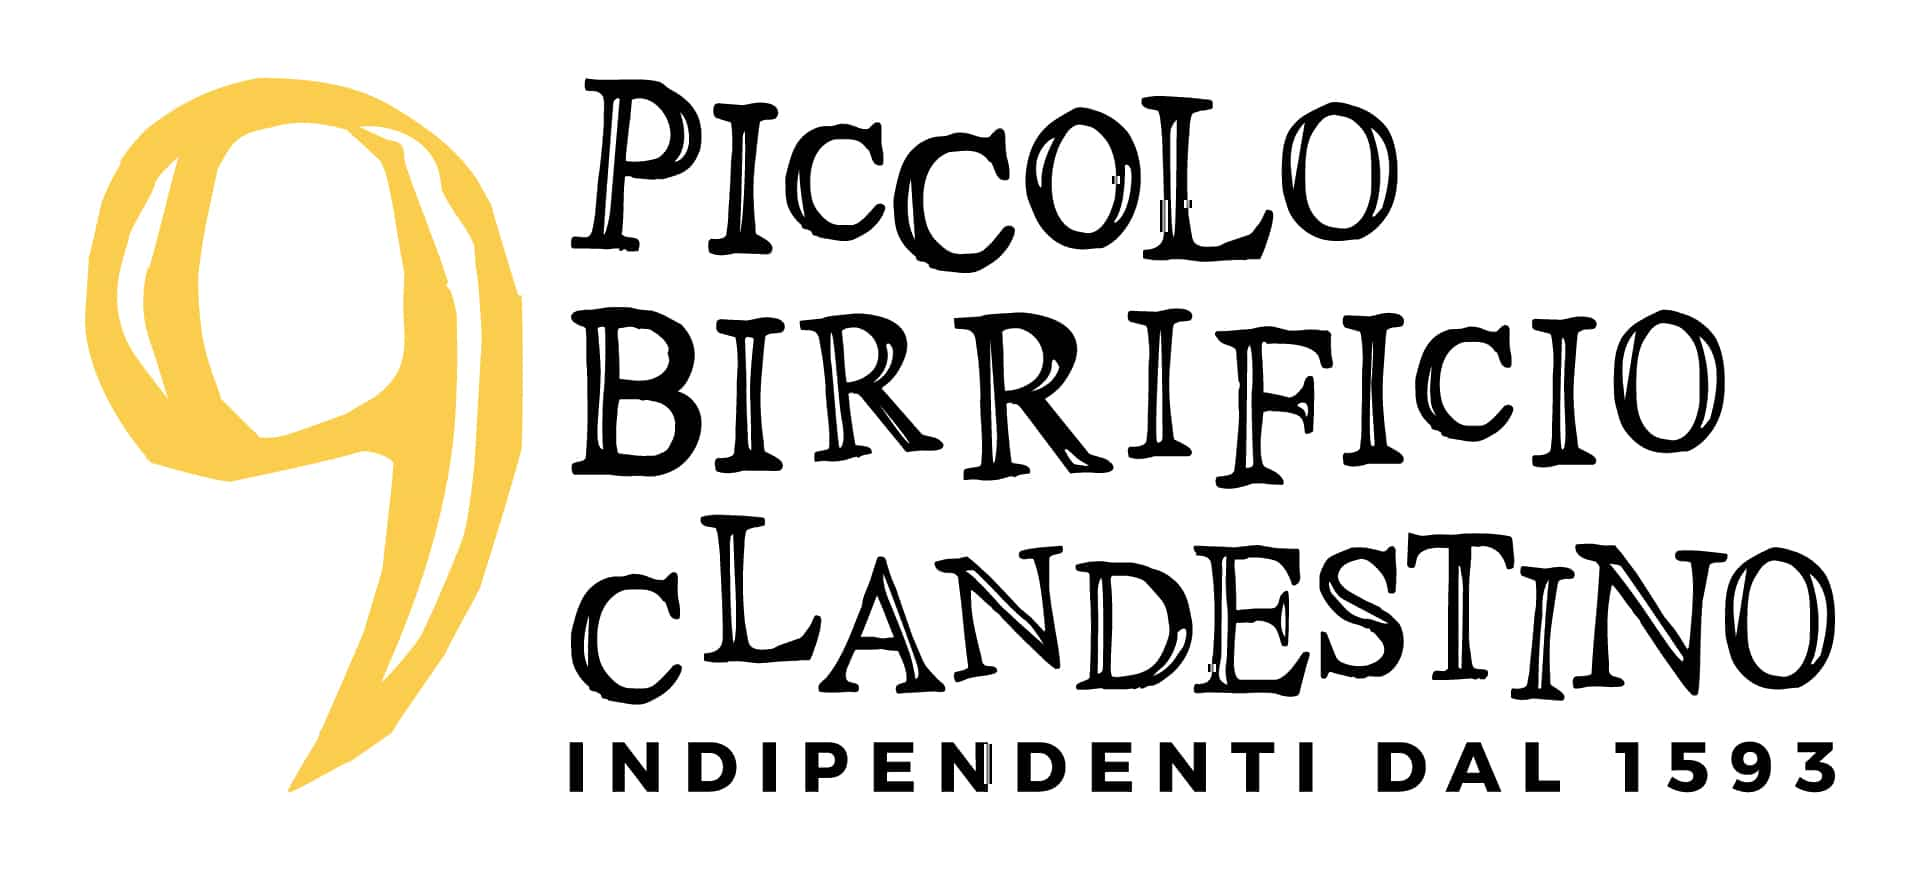 Piccolo Birrificio Clandestino